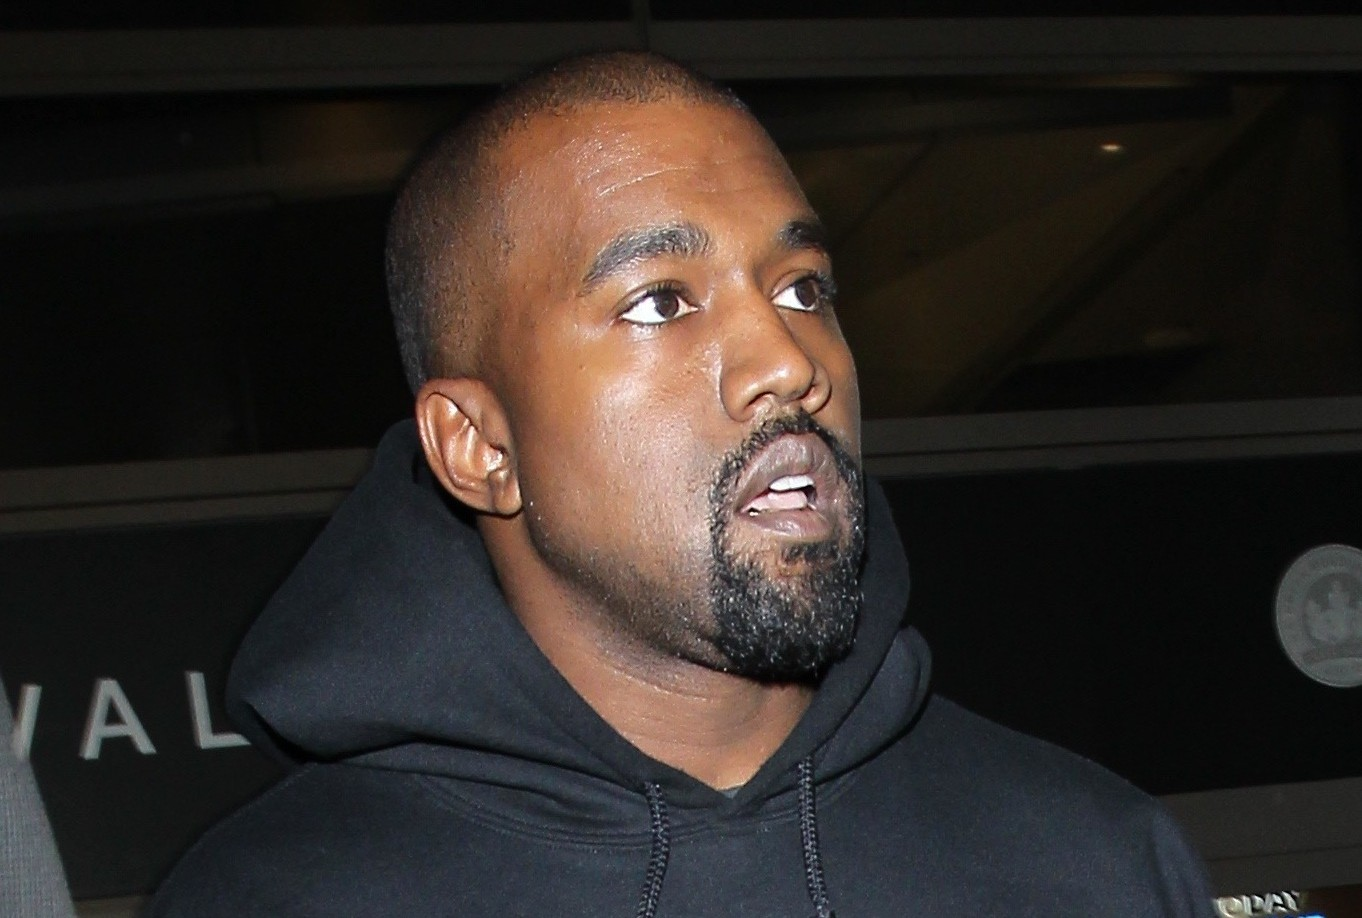 Republican Politician Under Fire For Dressing As Kanye West In Blackface